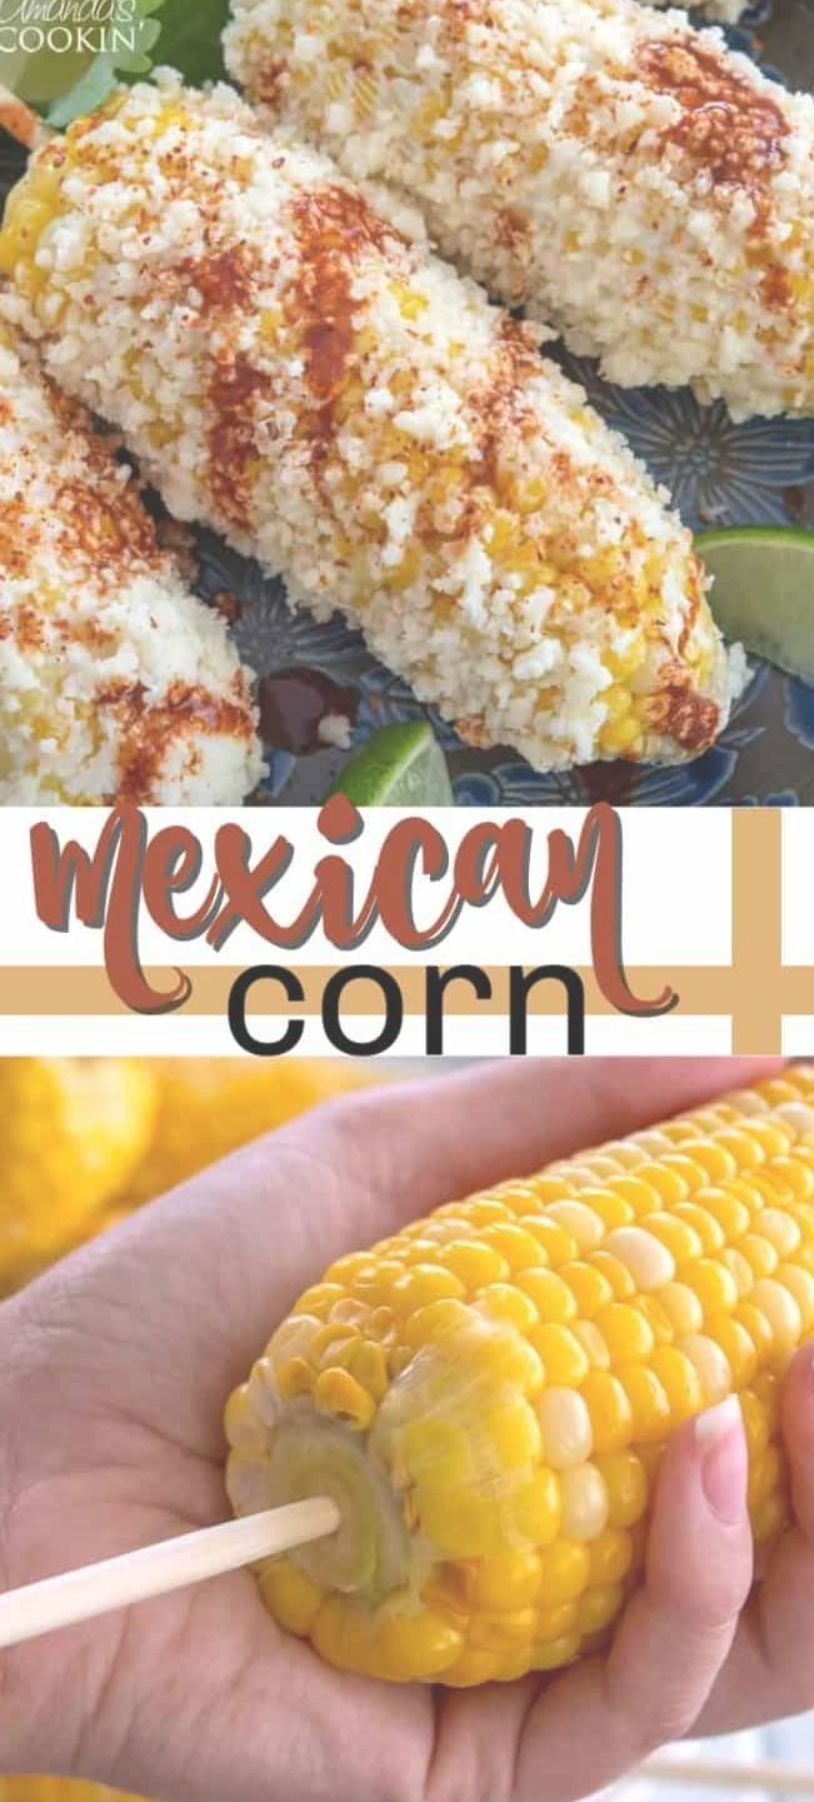 Mexican Corn on the cob with cheese mayo and Latin spices makes the best summer food Enjoy this Mexican street food anytime with this easy recipe